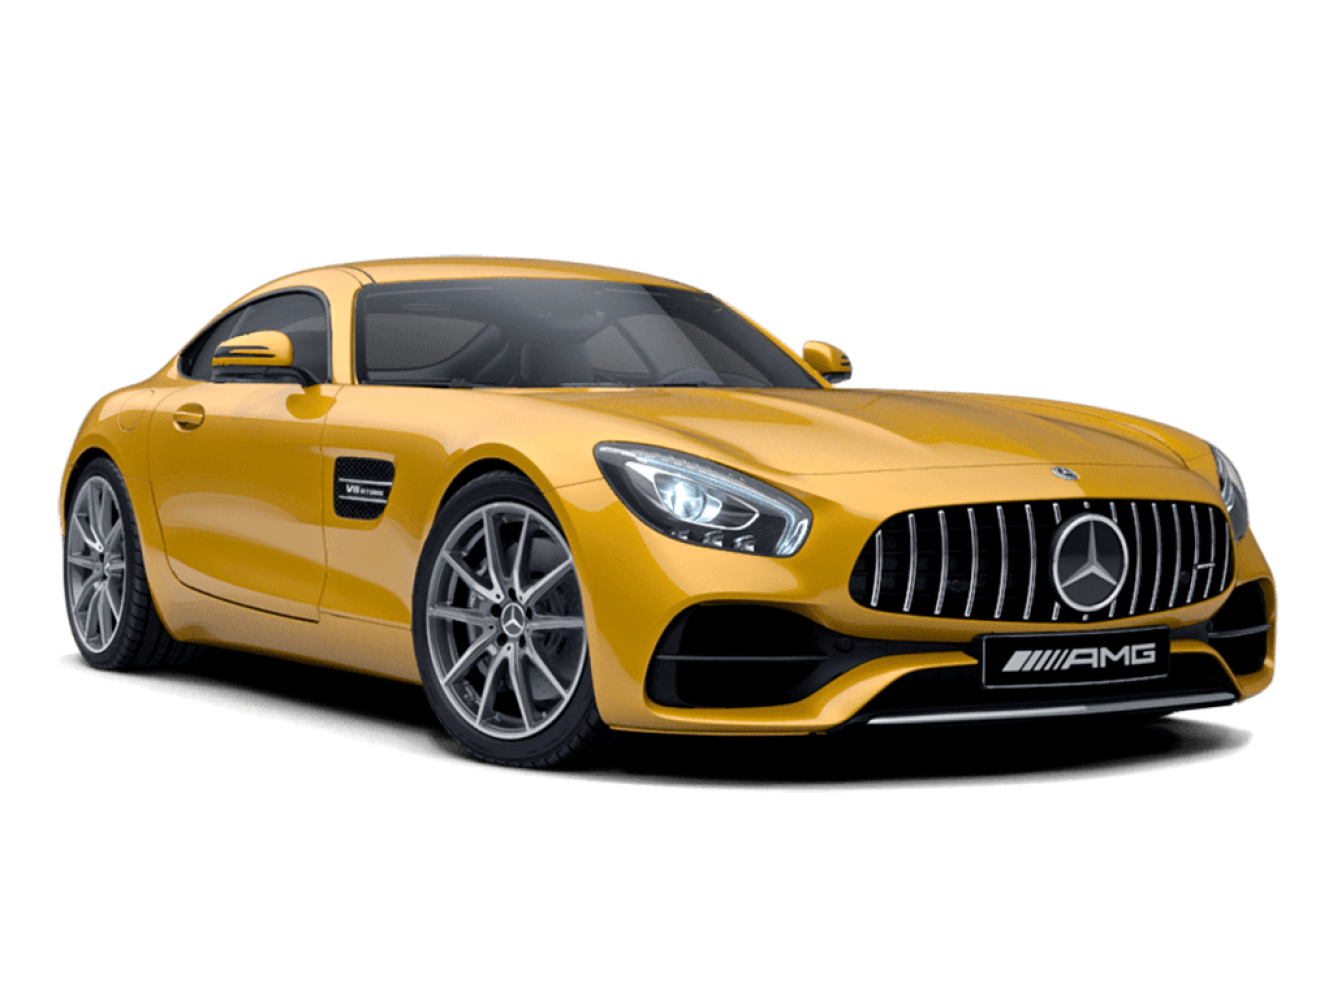 new mercedes amg mercedes amg gt gt 522 s premium 2dr auto petrol coupe for sale vertu. Black Bedroom Furniture Sets. Home Design Ideas